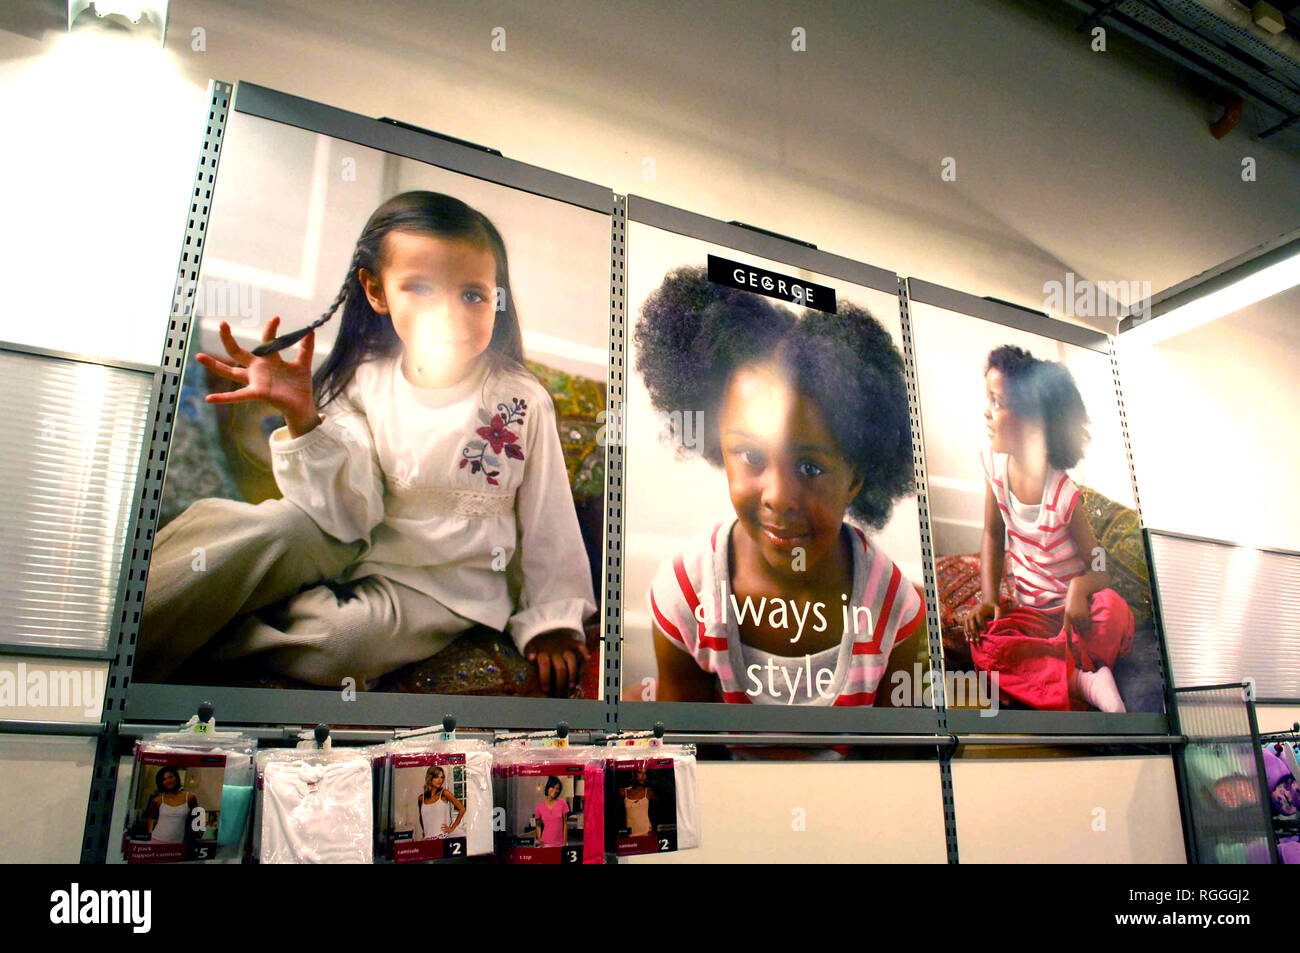 Advertising poster in an ASDA store for George childrens clothing - Stock Image